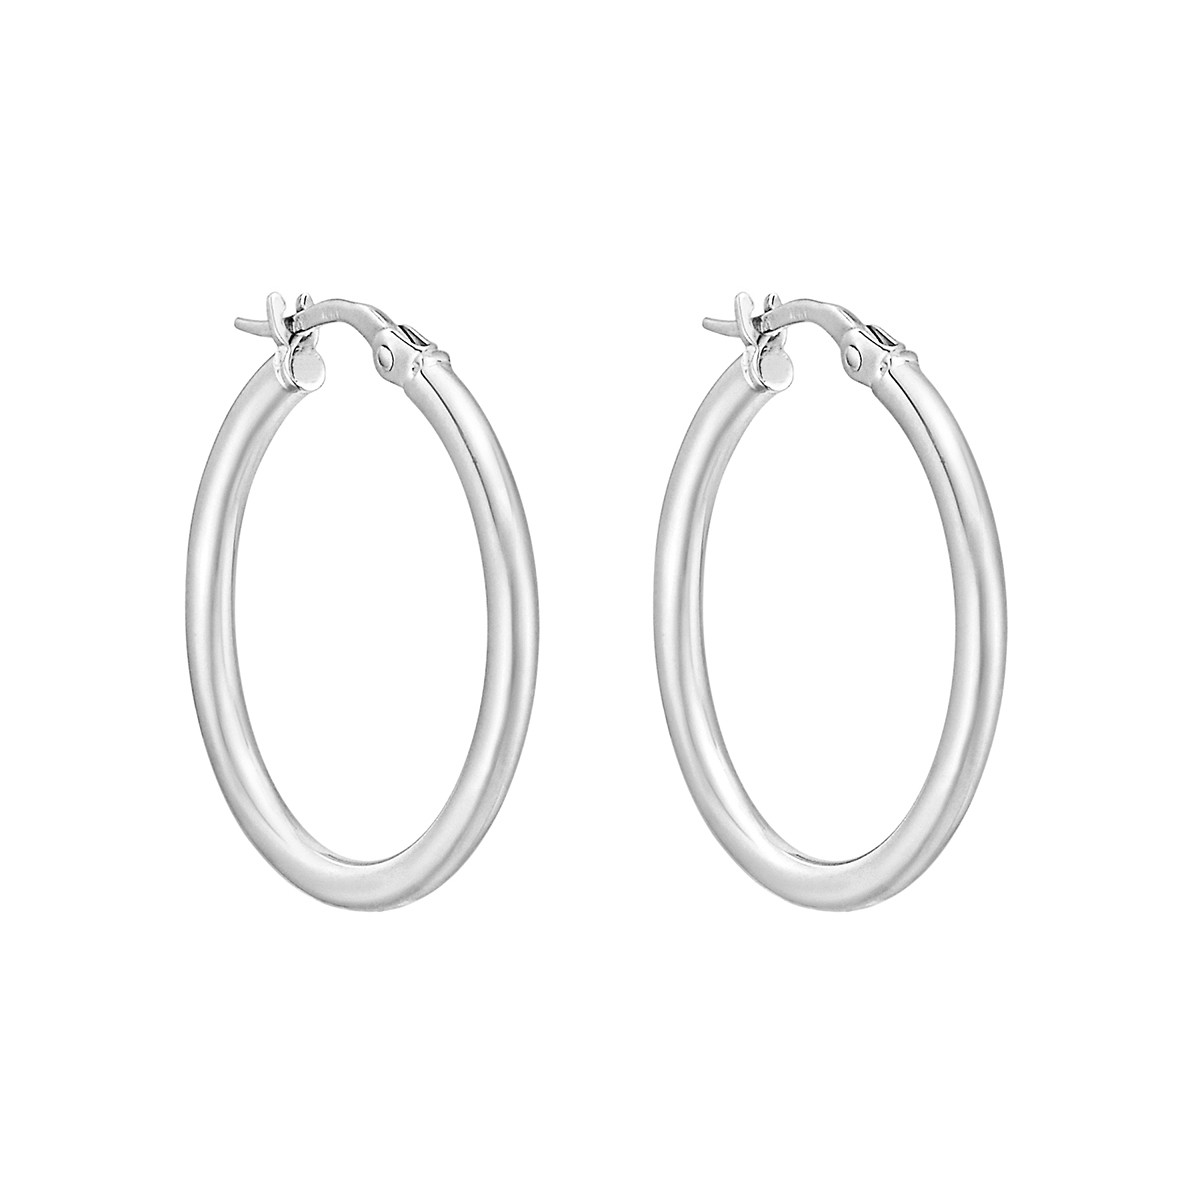 Medium 18k White Gold Round Hoop Earrings